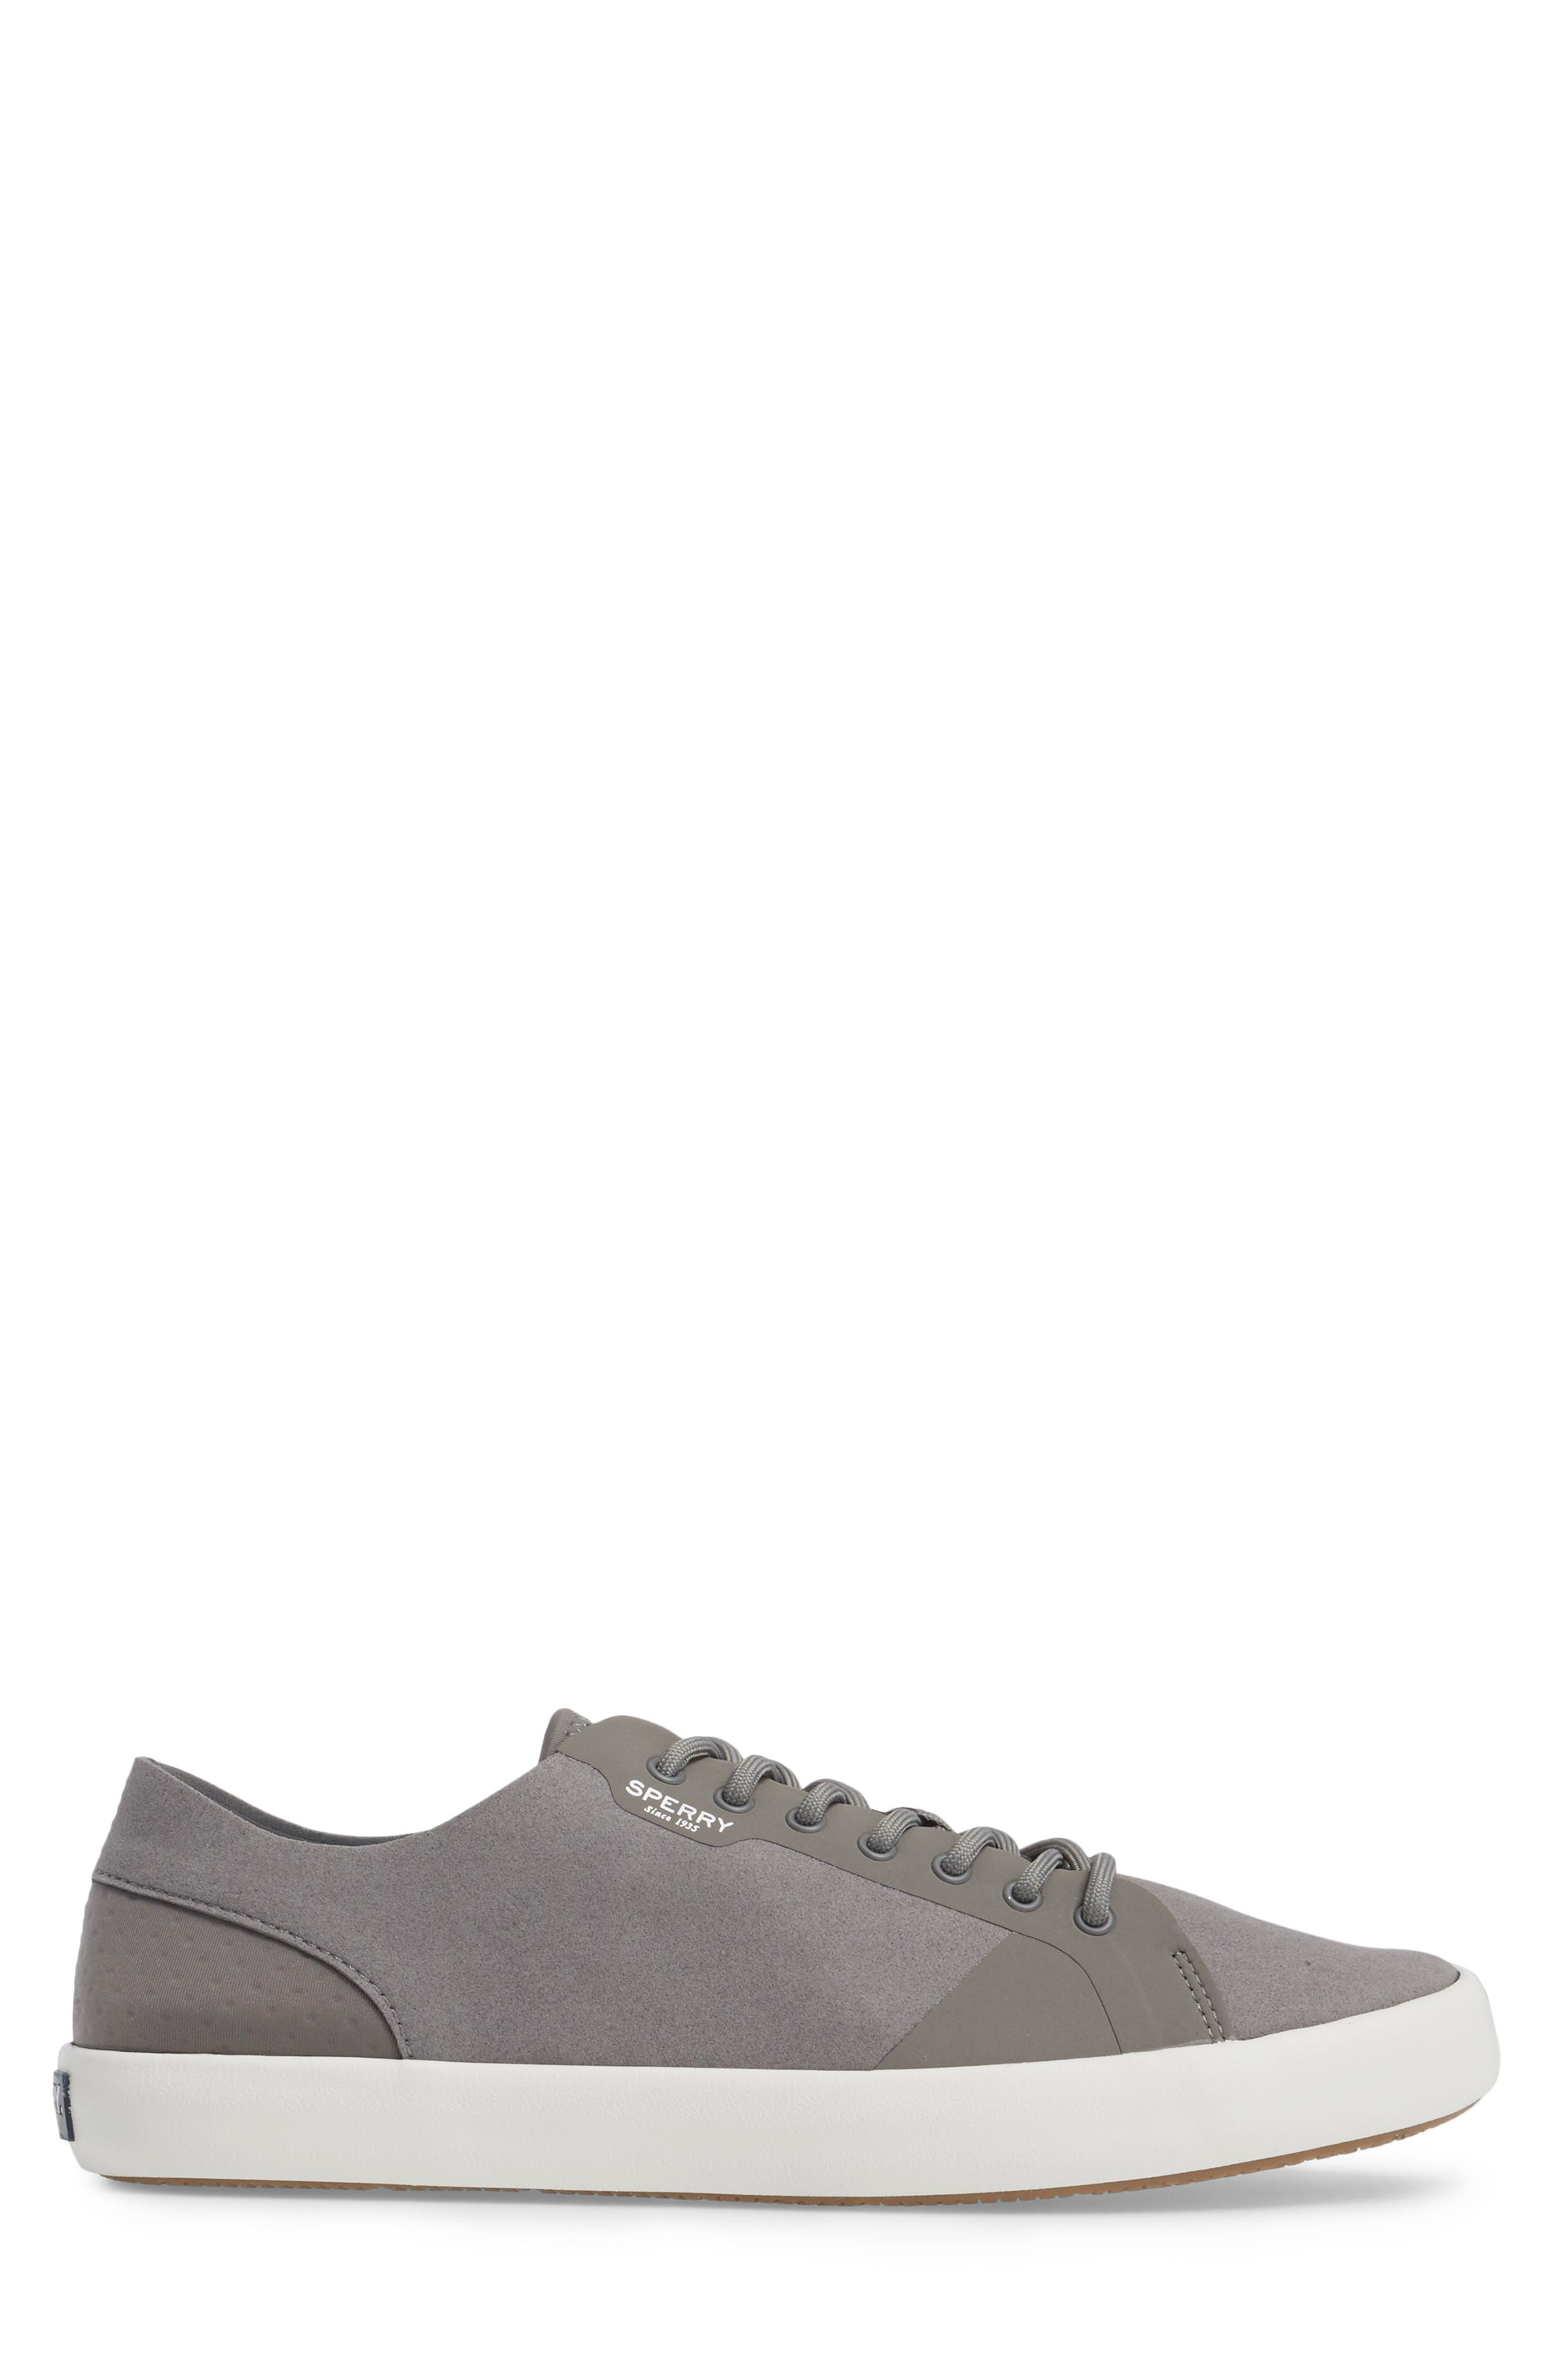 Flex Deck LTT Sneaker,                             Alternate thumbnail 3, color,                             GREY